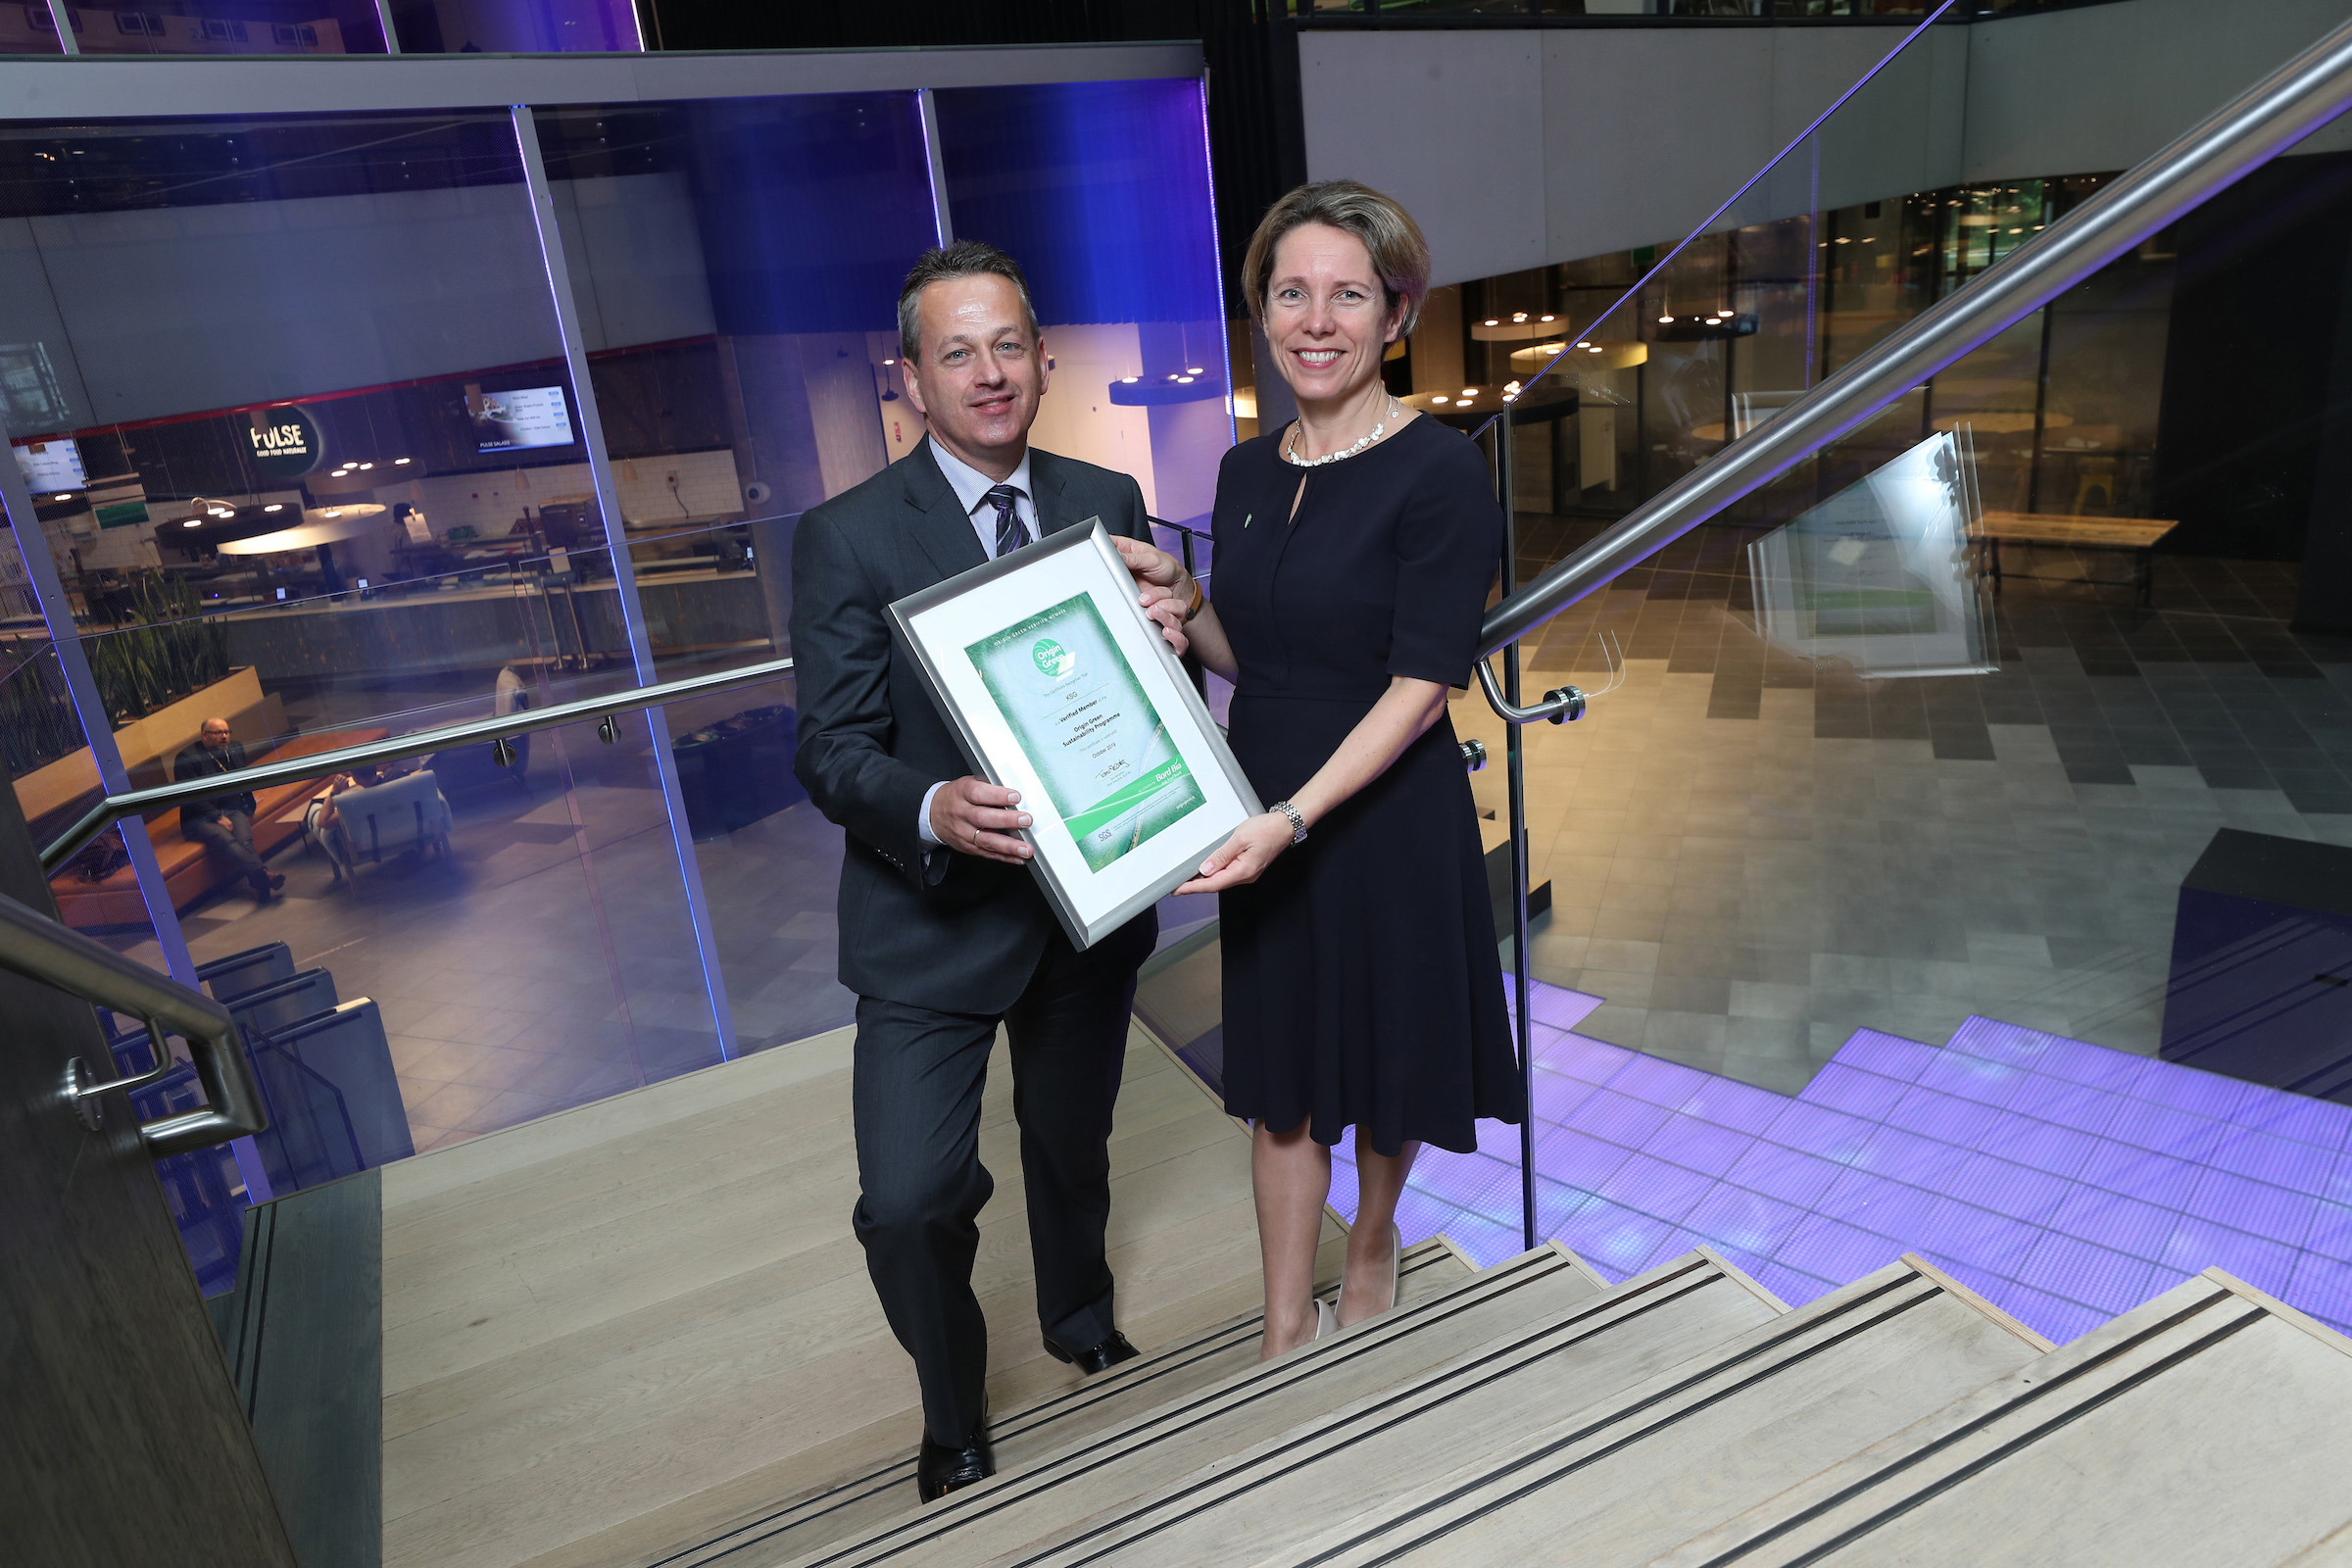 Michael Gleeson (CEO KSG Catering) being presented with the Origin Green Certification by Tara McCarthy (CEO Bord Bia) in the One Microsoft Place offices in South County Business Park, Leopardstown, Dublin 18. For further information contact Mari O'Leary 01-6789888 marioleary@olearypr.ie